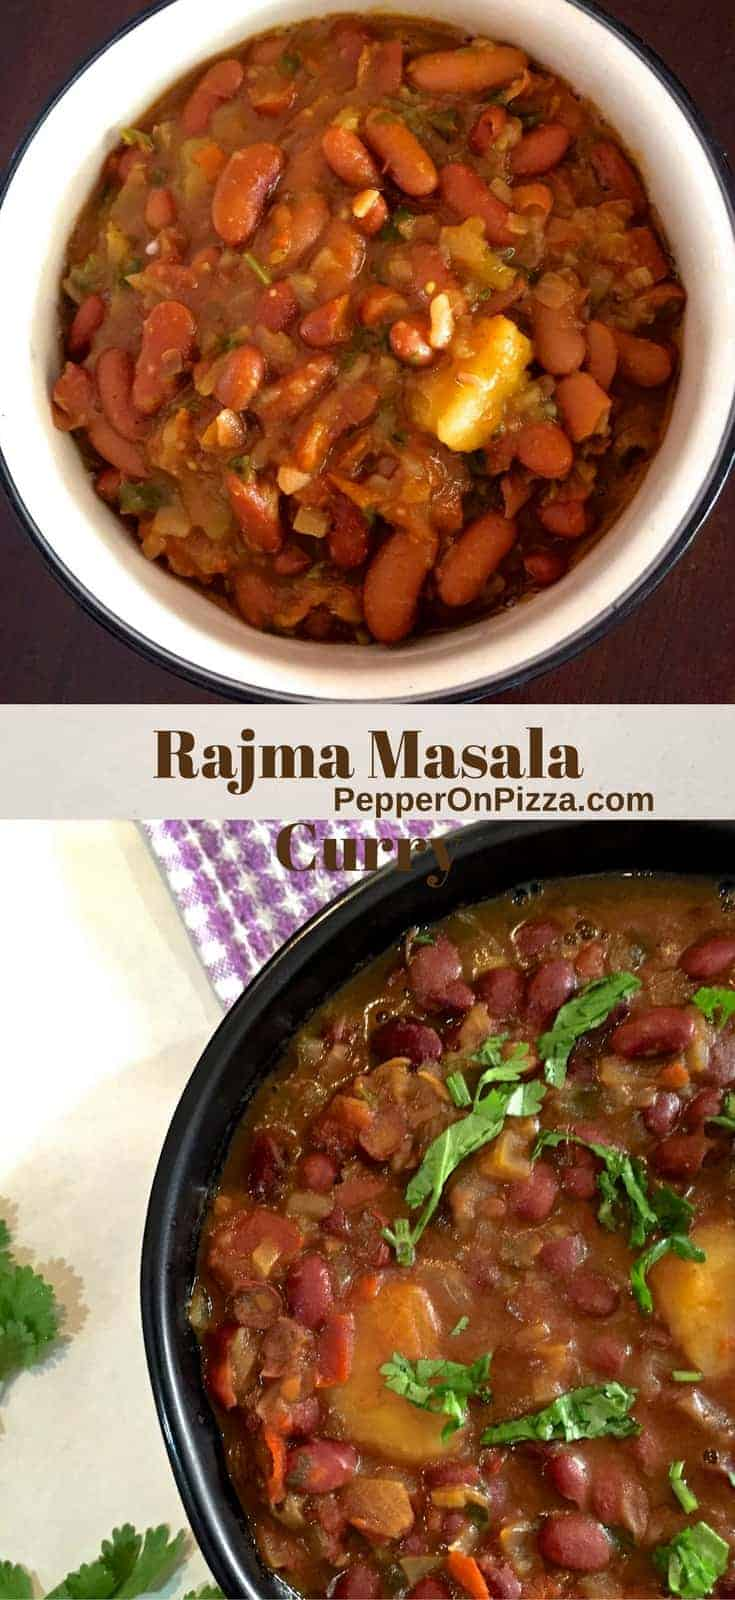 #RajmaMasalaCurry- red kidney beans cooked in thick onion tomato gravy in a black bowl on a lavender and white checked napkin with another white bowl of rajma at the top of the picture_Pepperonpizza.com